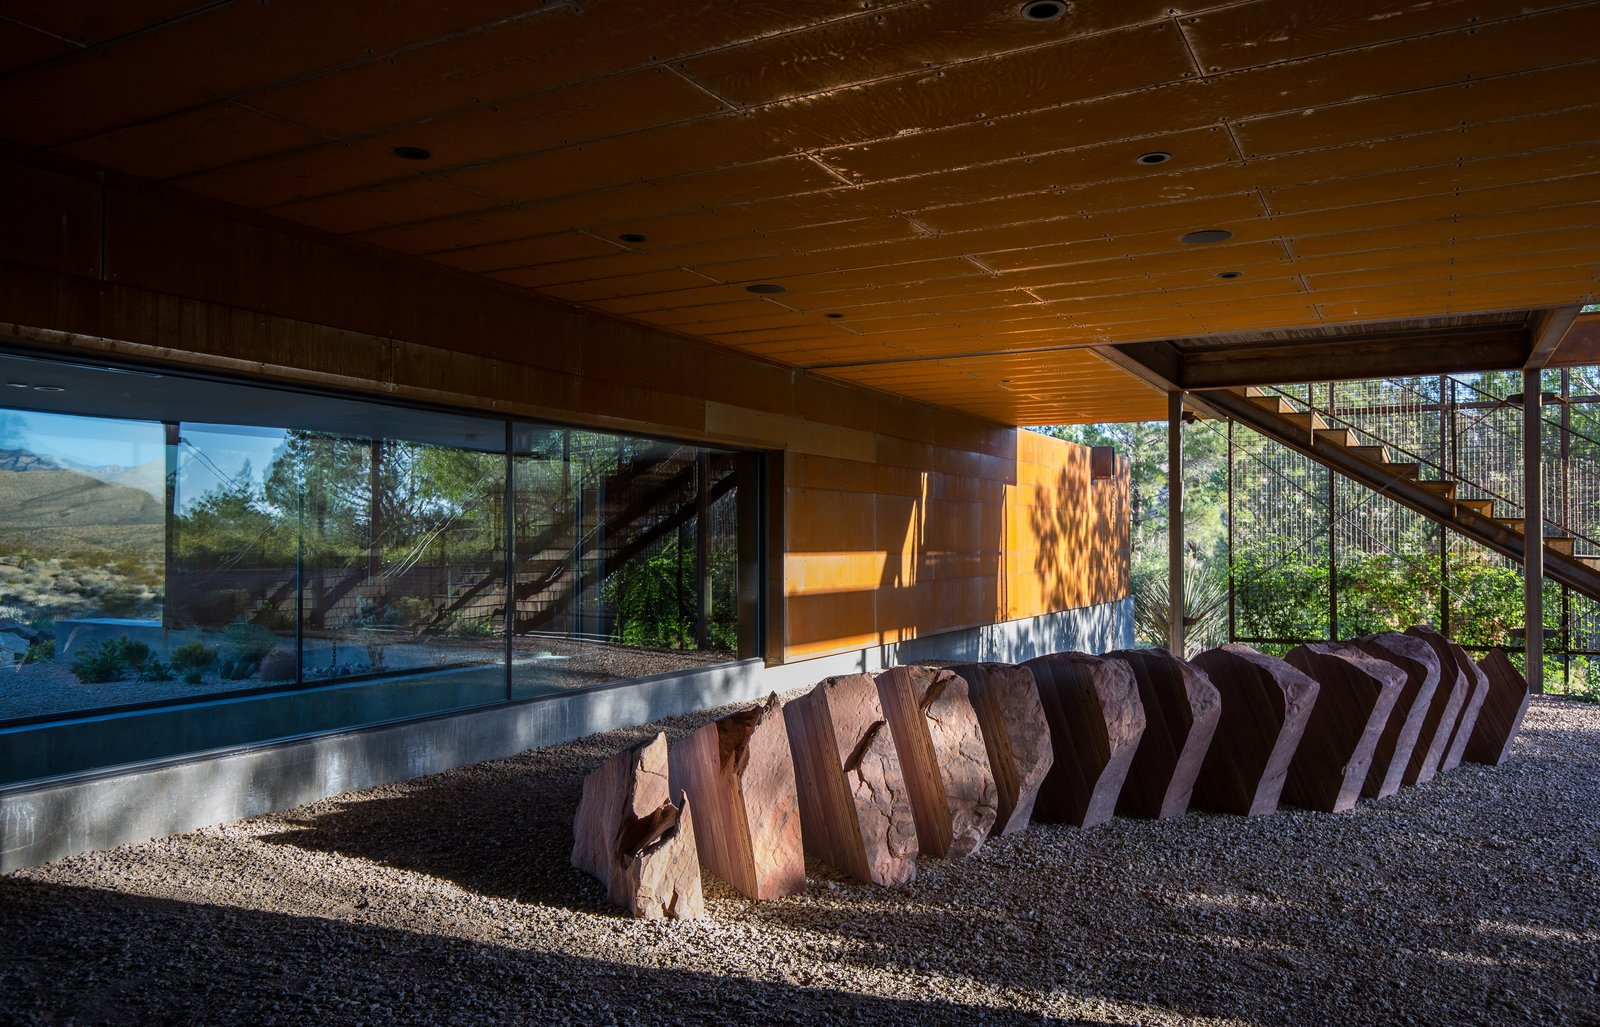 Outdoor, Decomposed Granite Patio, Porch, Deck, Boulders, Metal Fences, Wall, Concrete Fences, Wall, Front Yard, Walkways, Gardens, and Concrete Patio, Porch, Deck  minMAX by Punch Architecture